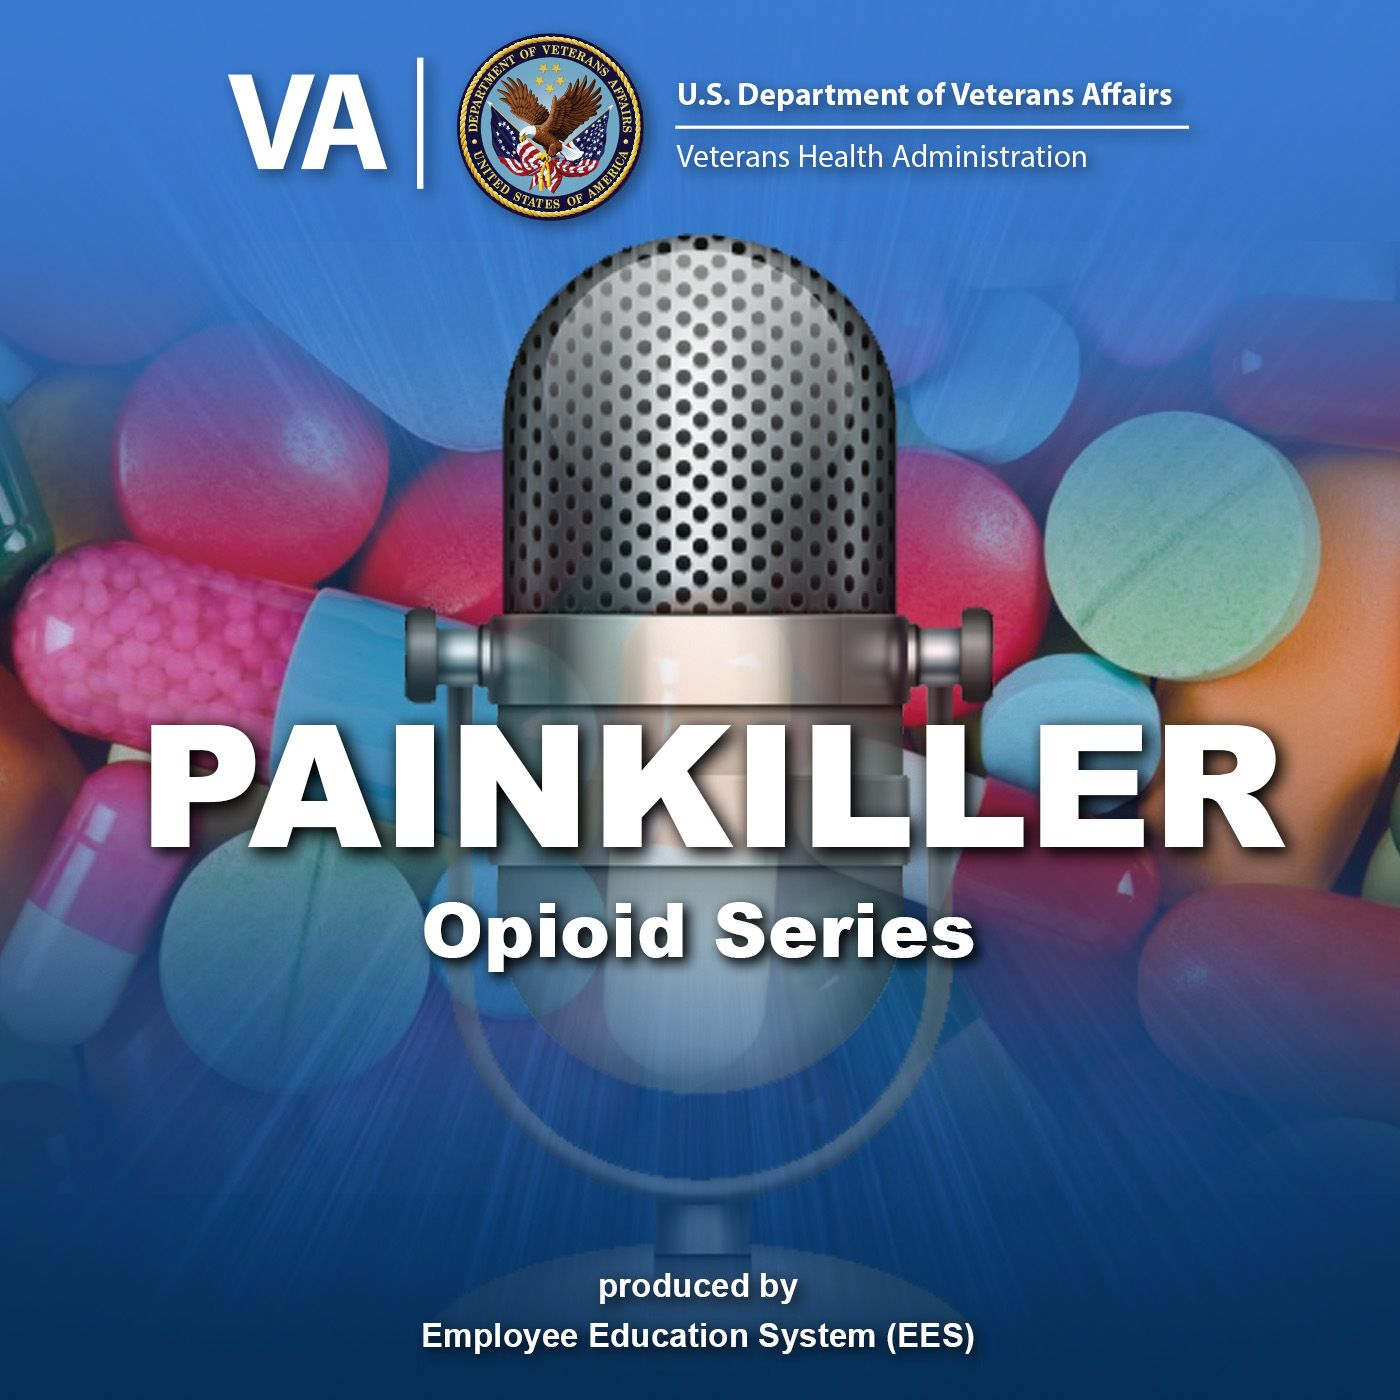 The Drug Enforcement Administration Taking on the Biggest Opioid Distribution Case in U.S. History